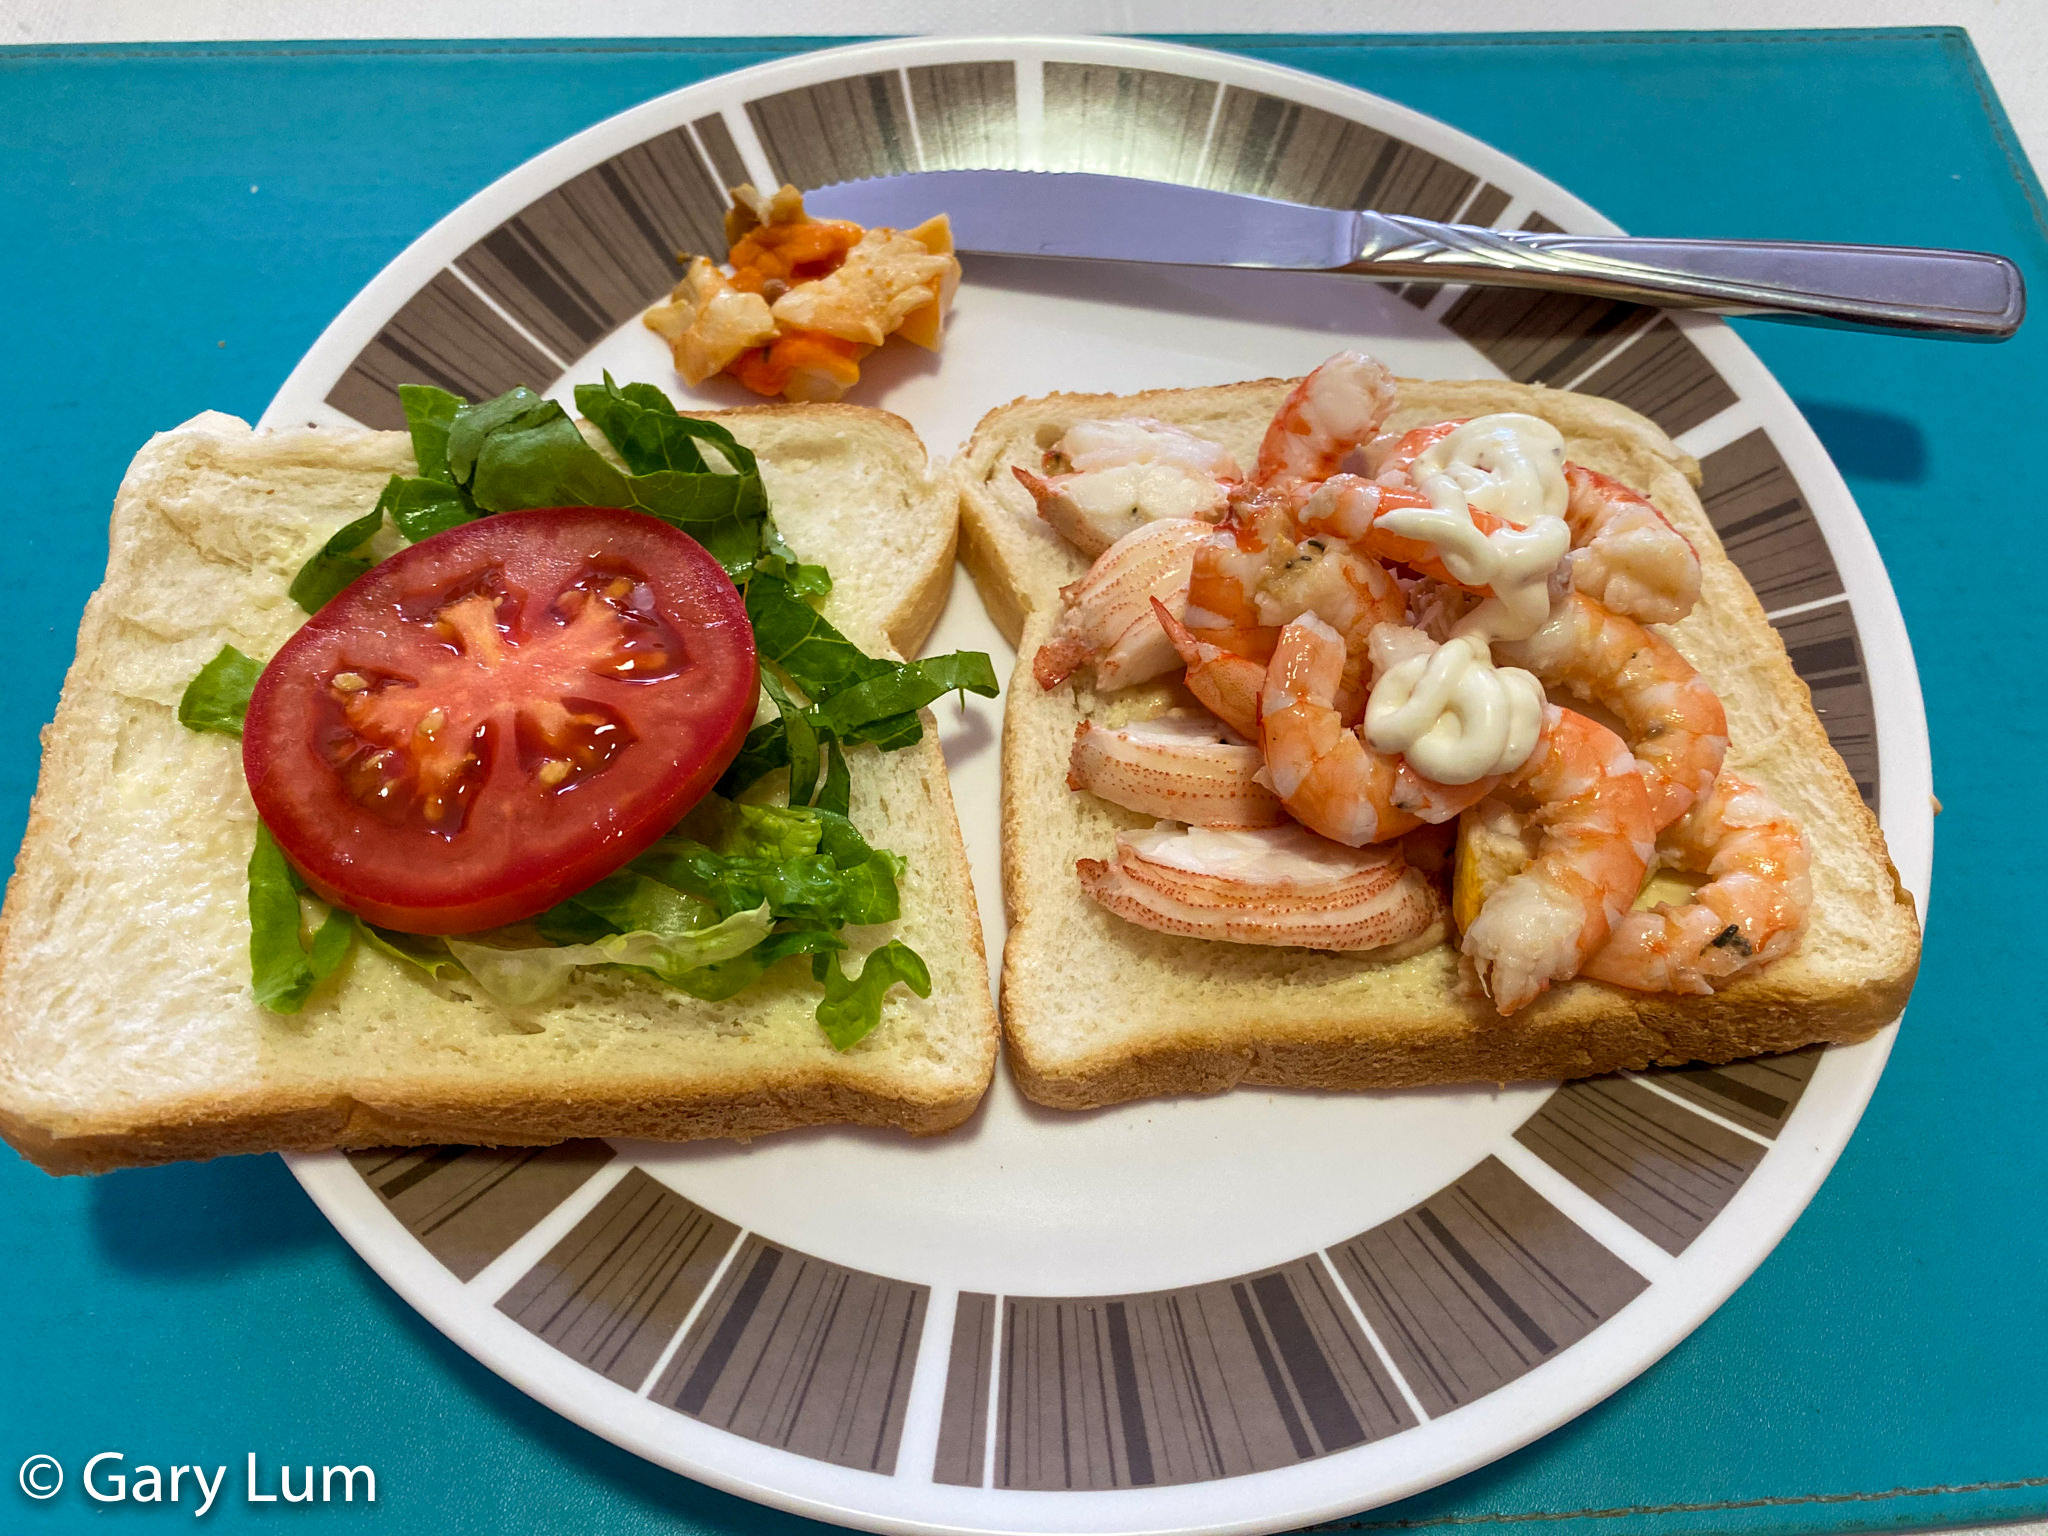 New Year's Day 2020 lunch. Moreton Bay Bugs and Endeavour prawns with fresh white bread plus cos lettuce and roma tomato. Gary Lum.